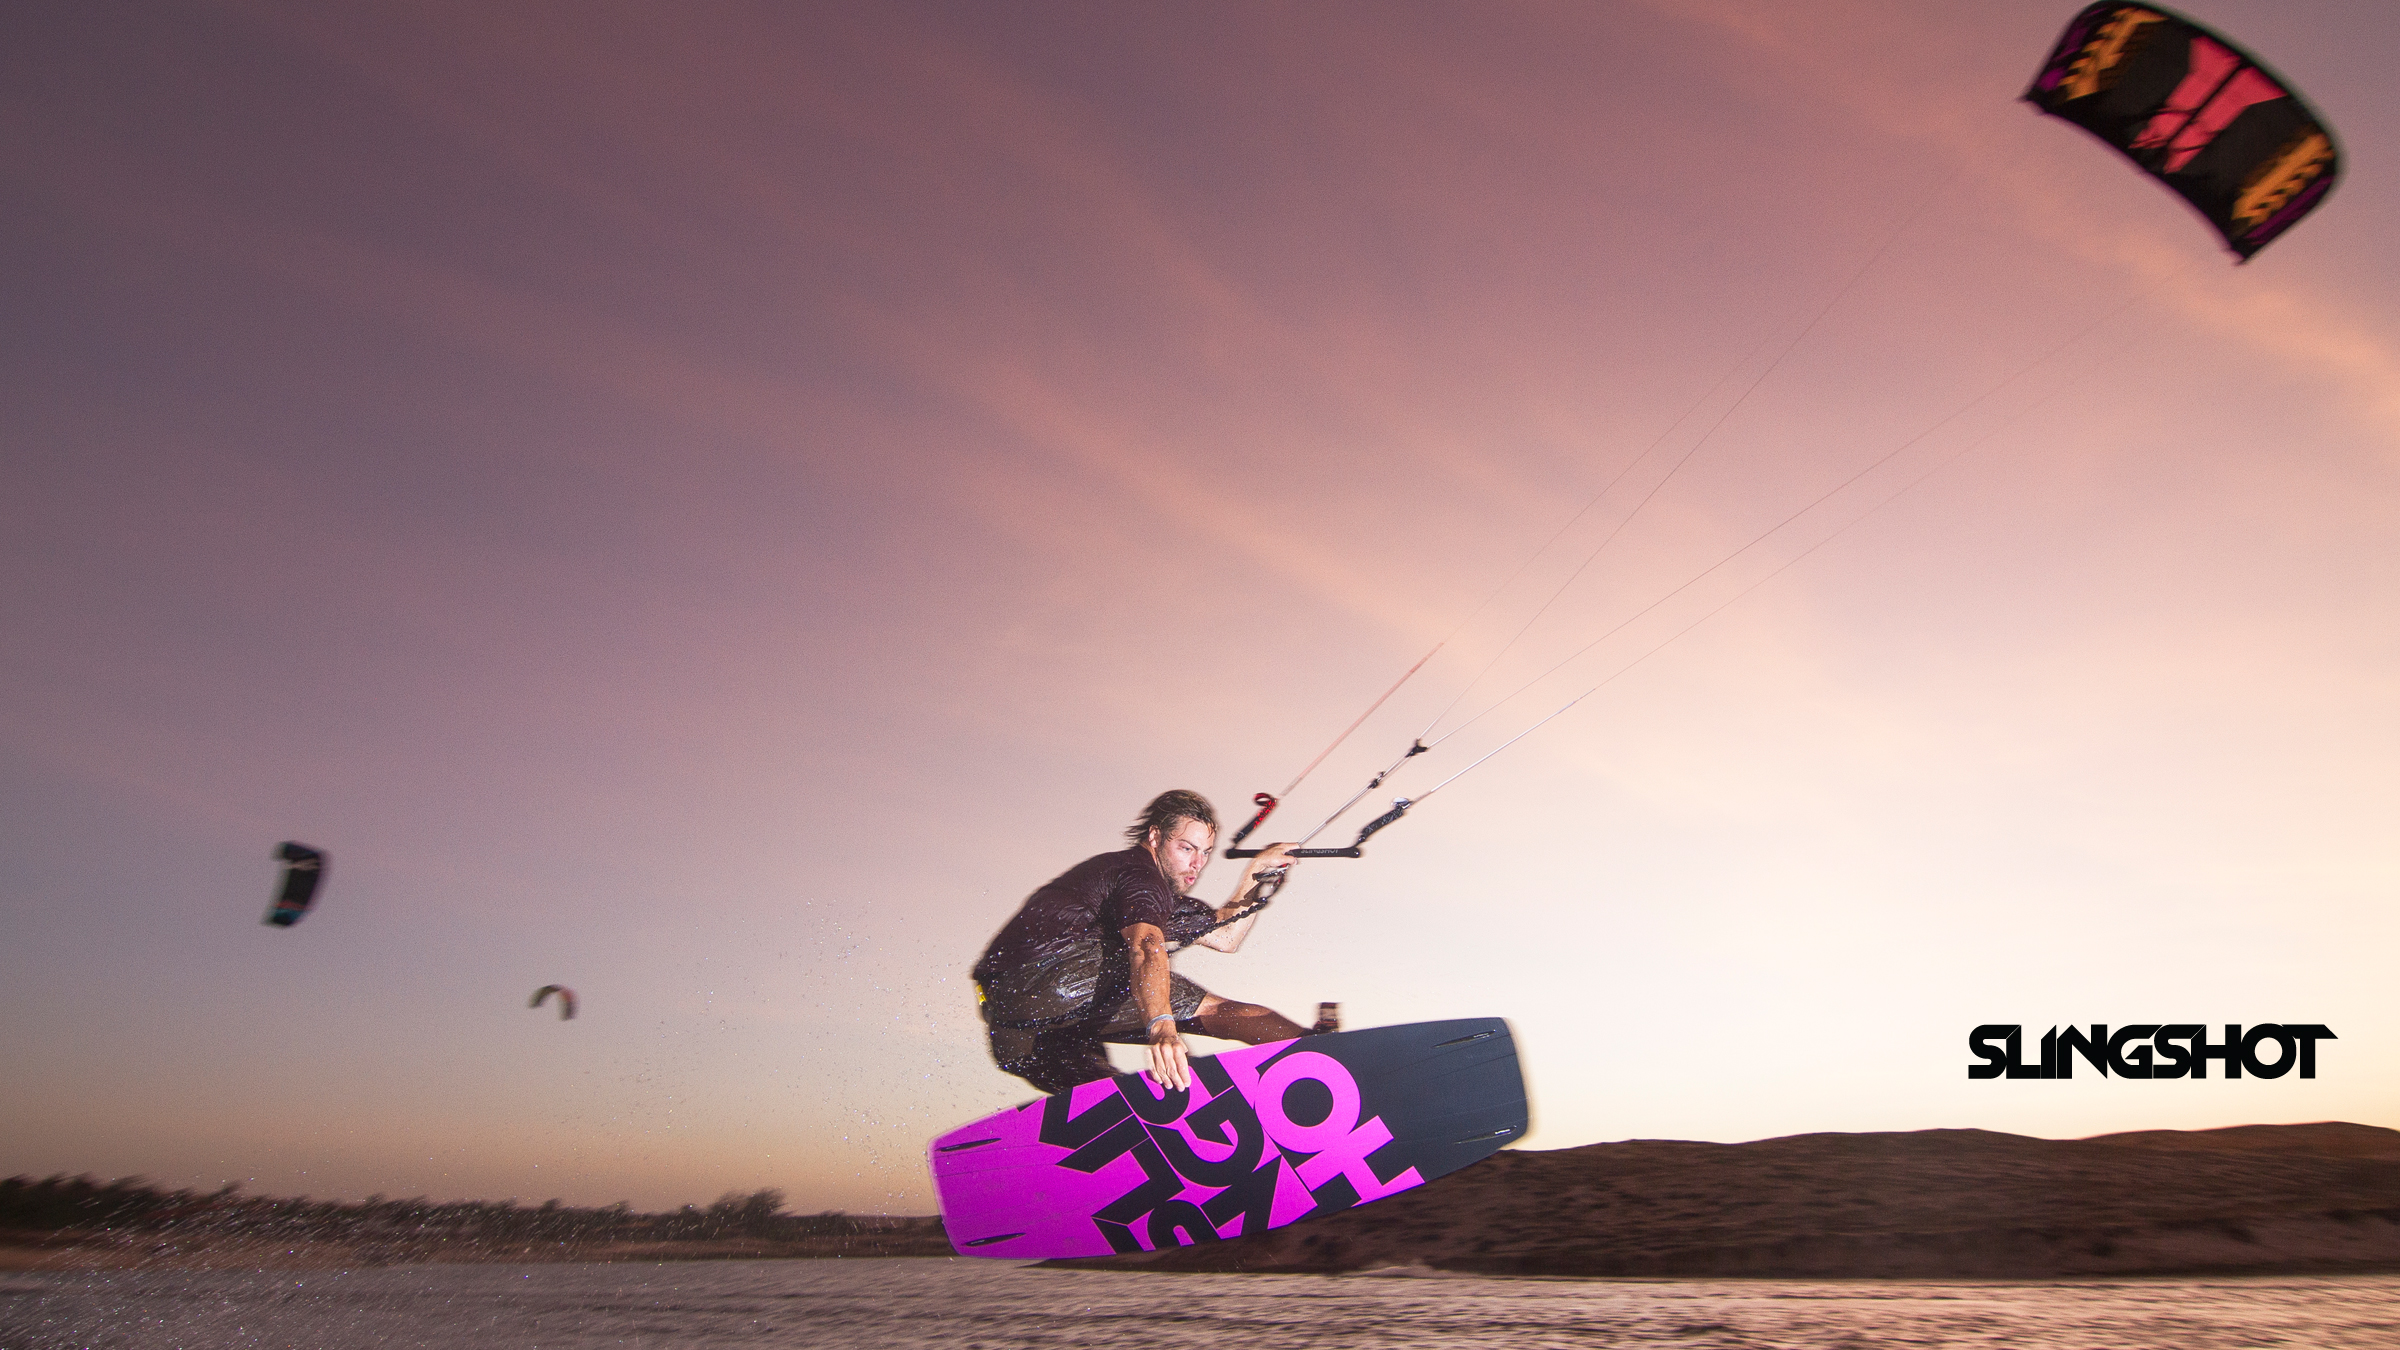 kitesurf wallpaper image - Grabbing some rail on the 2015 Slingshot Asylum board and flying the RPM kite. - in resolution: High Definition - HD 16:9 2400 X 1350